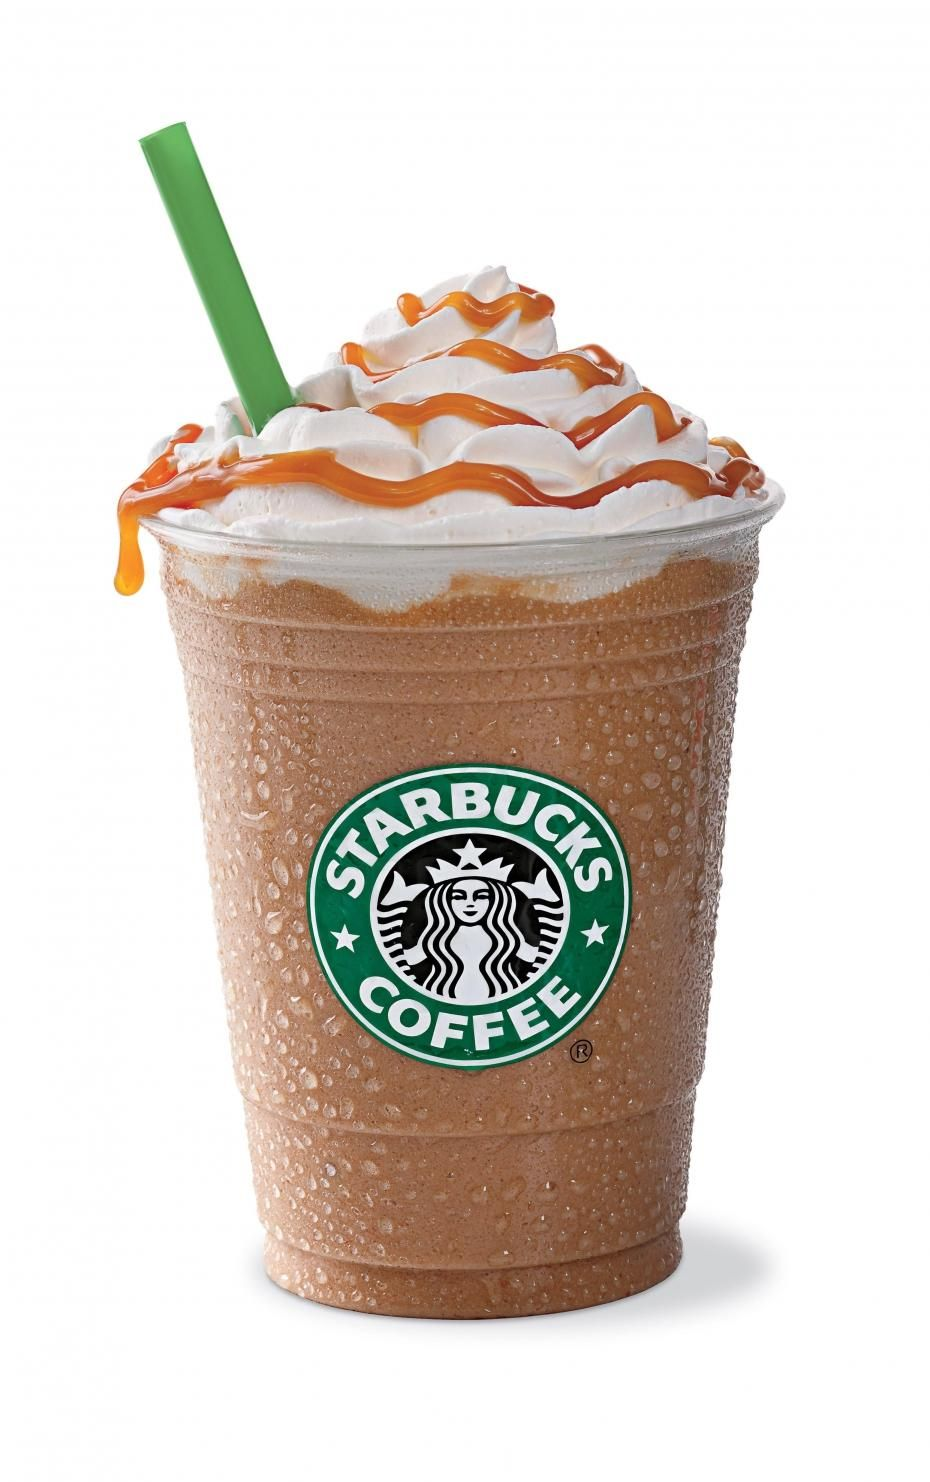 Starbucks Tumblr Drawing Google Search Starbucks Caramel Starbucks Caramel Frappuccino Starbucks Drinks